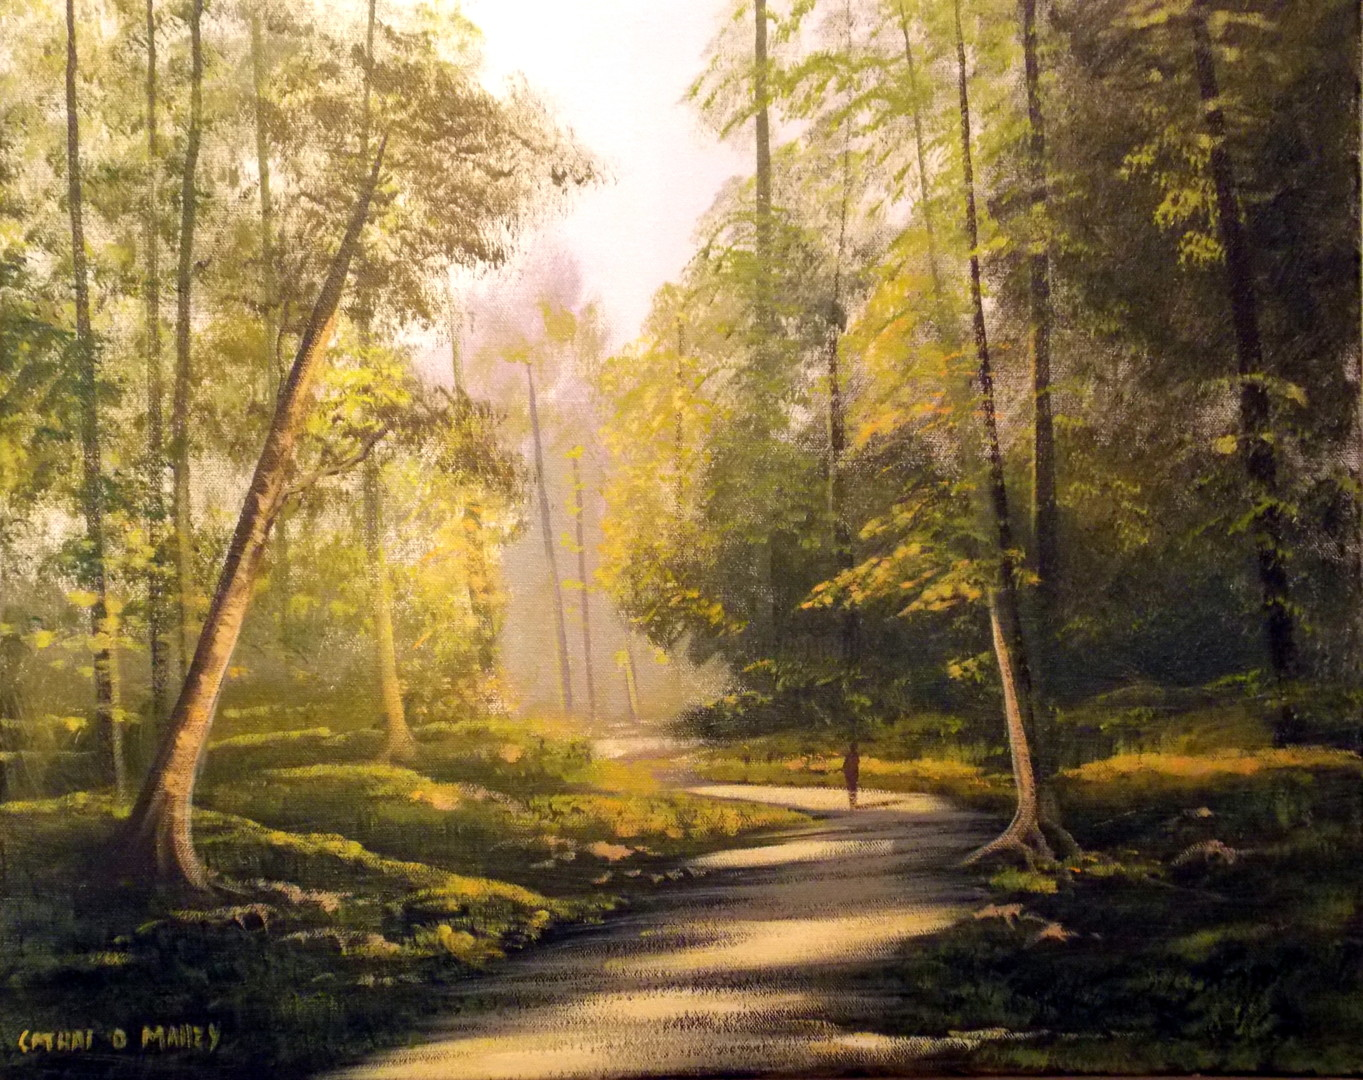 Cathal O Malley - forest  light nov